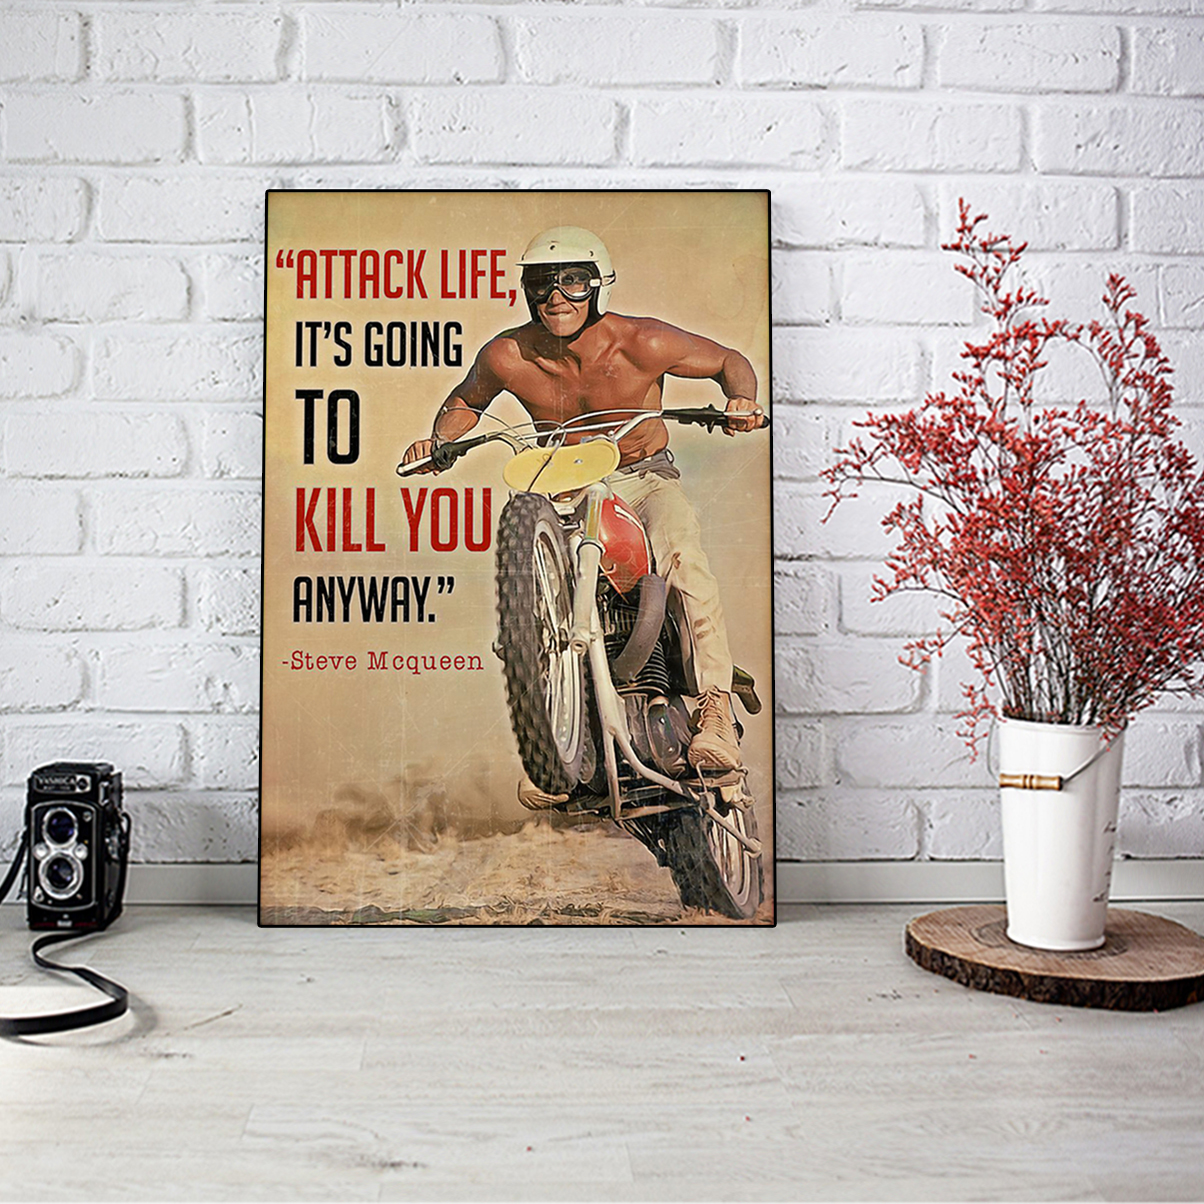 Attack life it's going to kill you anyway poster A3